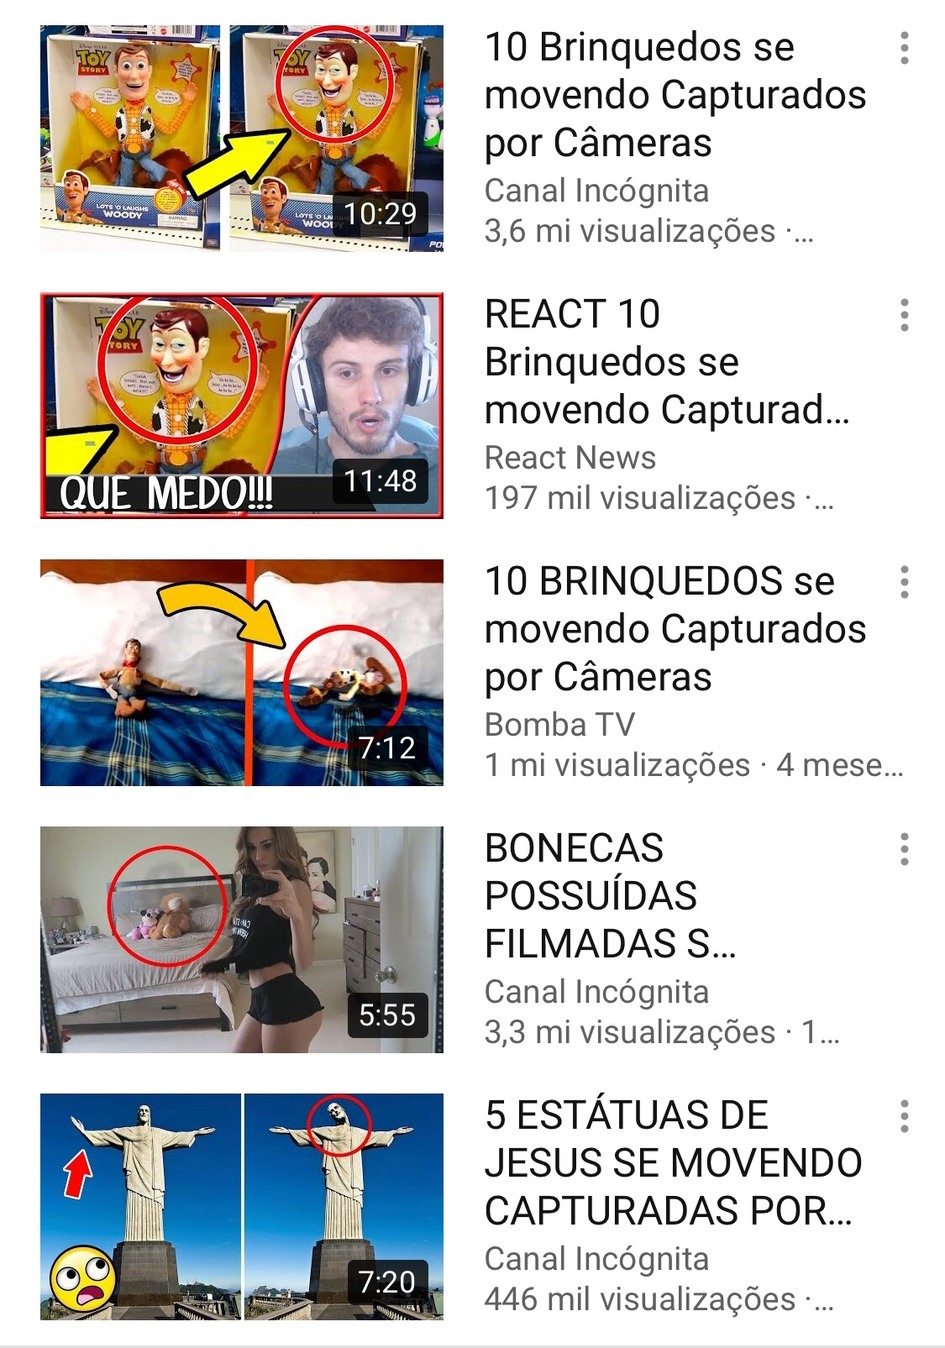 desisto do YouTube - meme